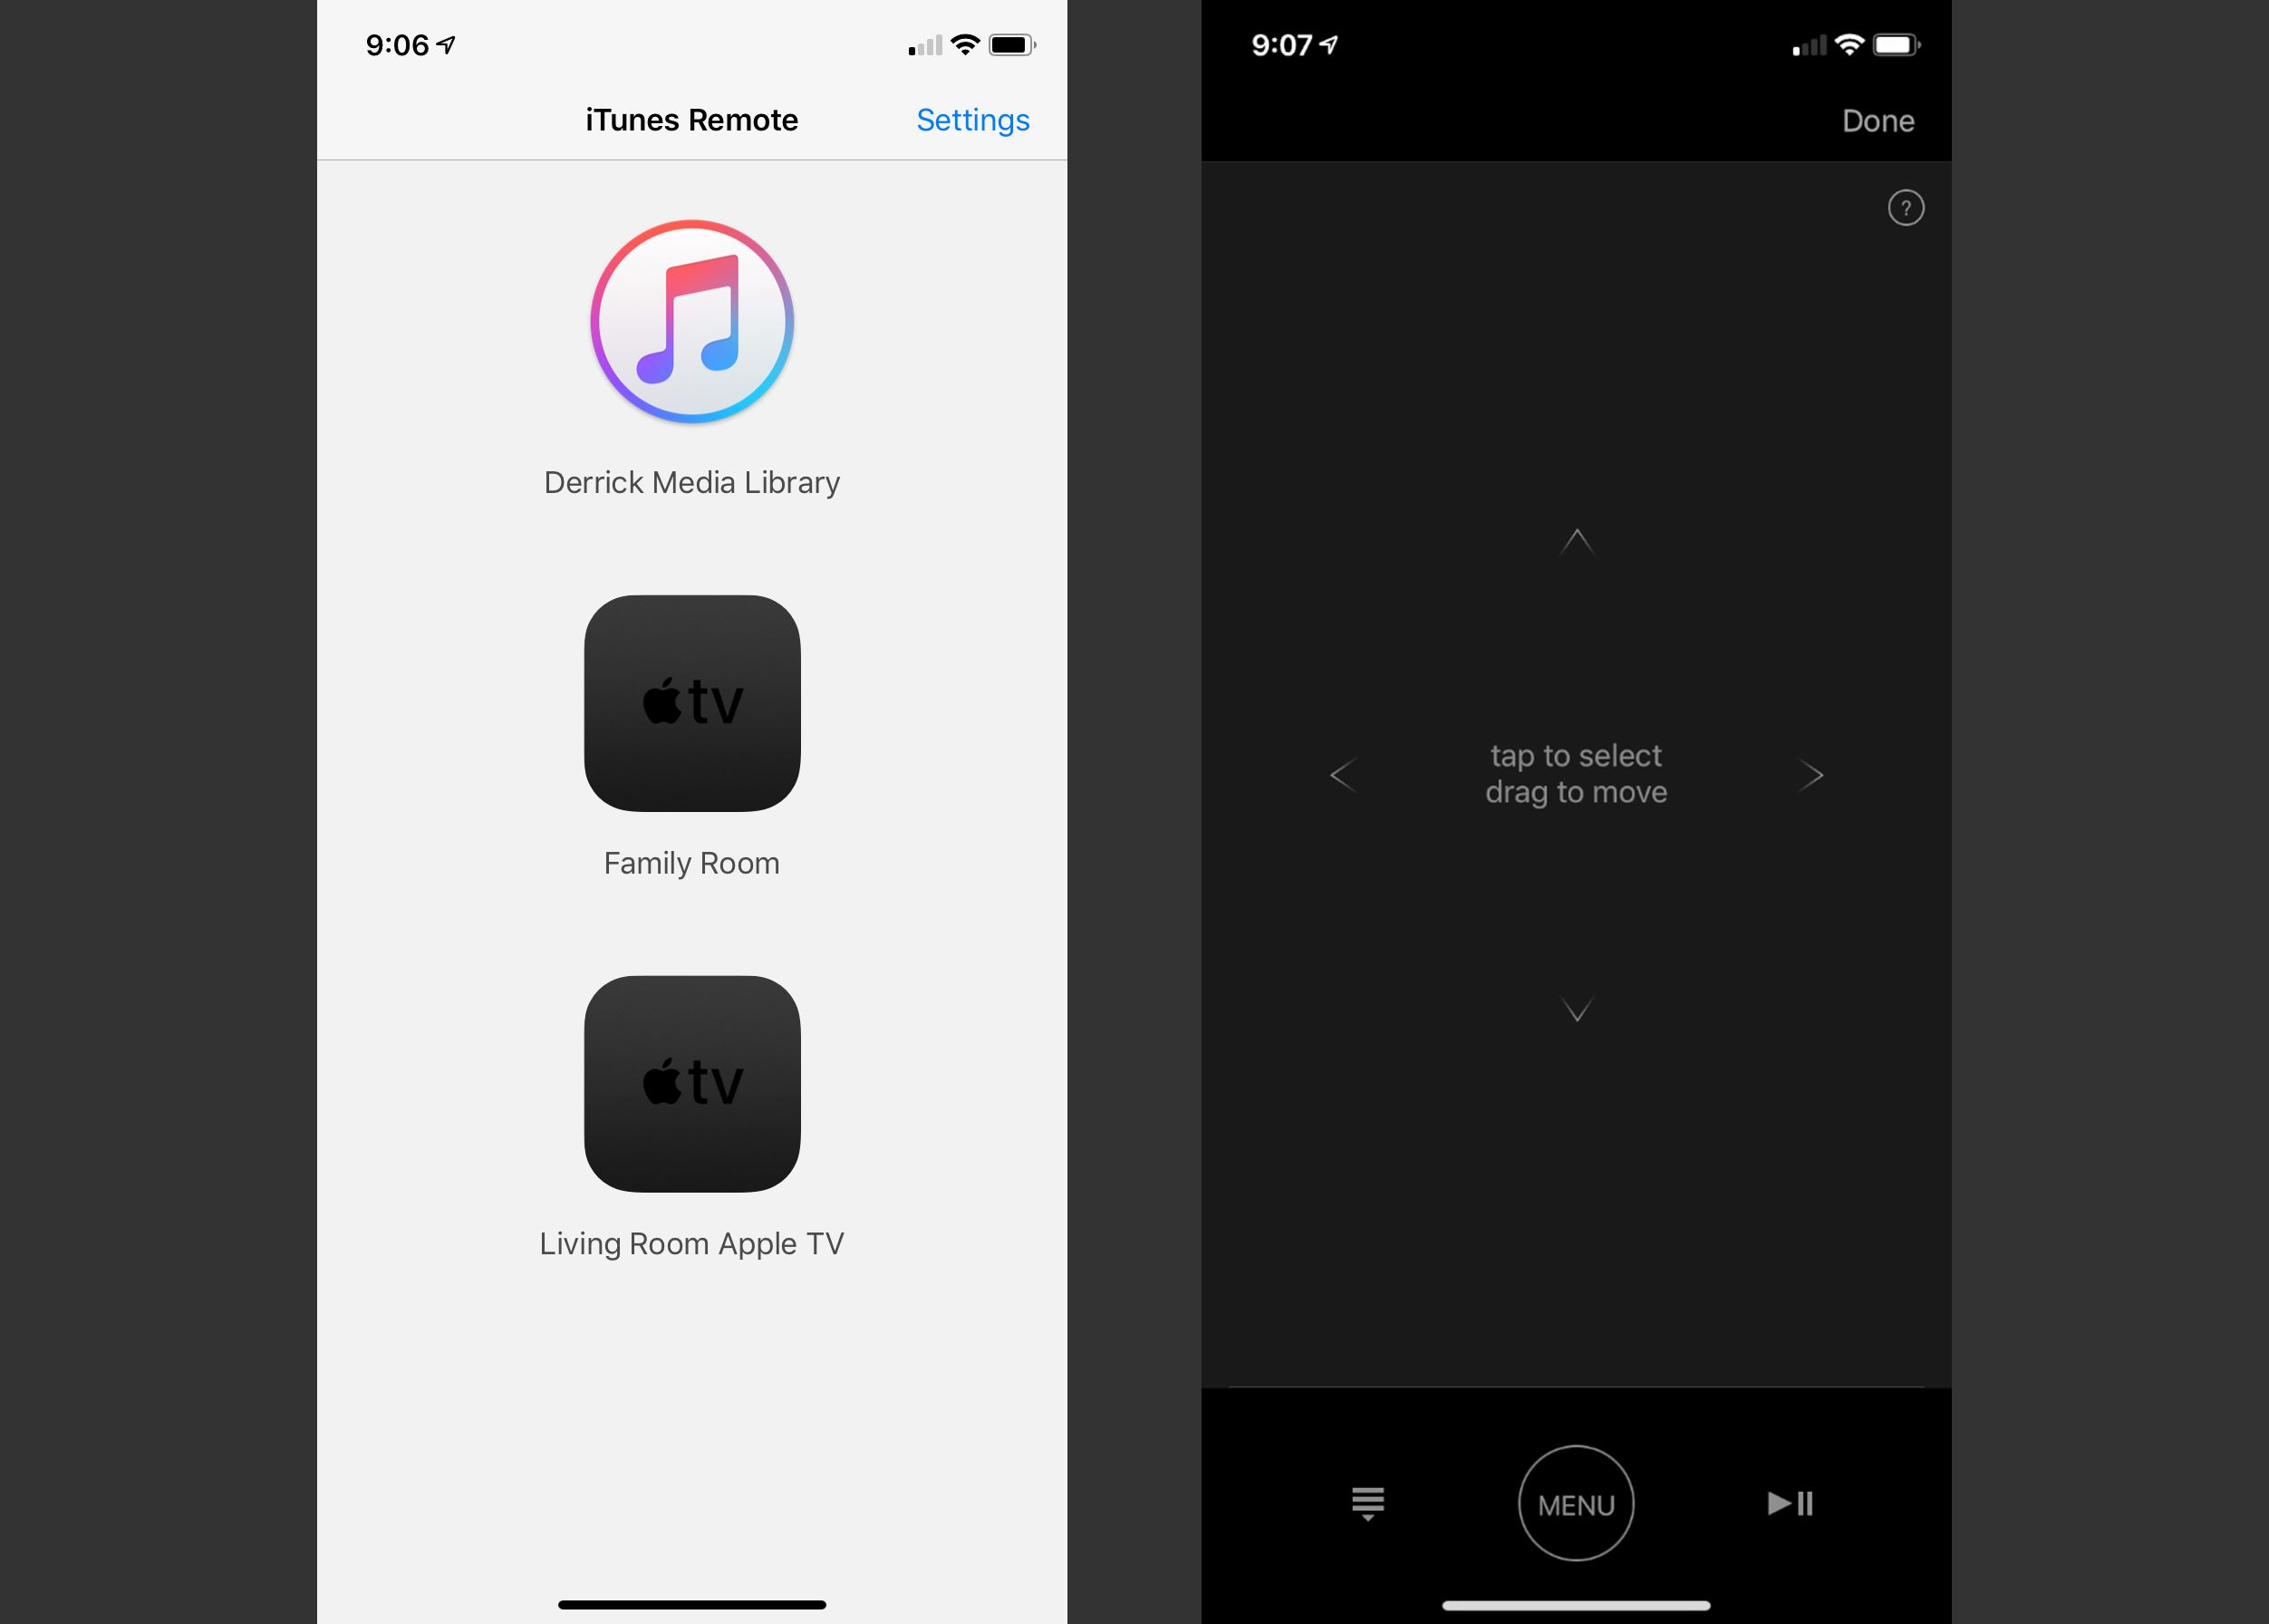 How to use the Apple TV Remote App